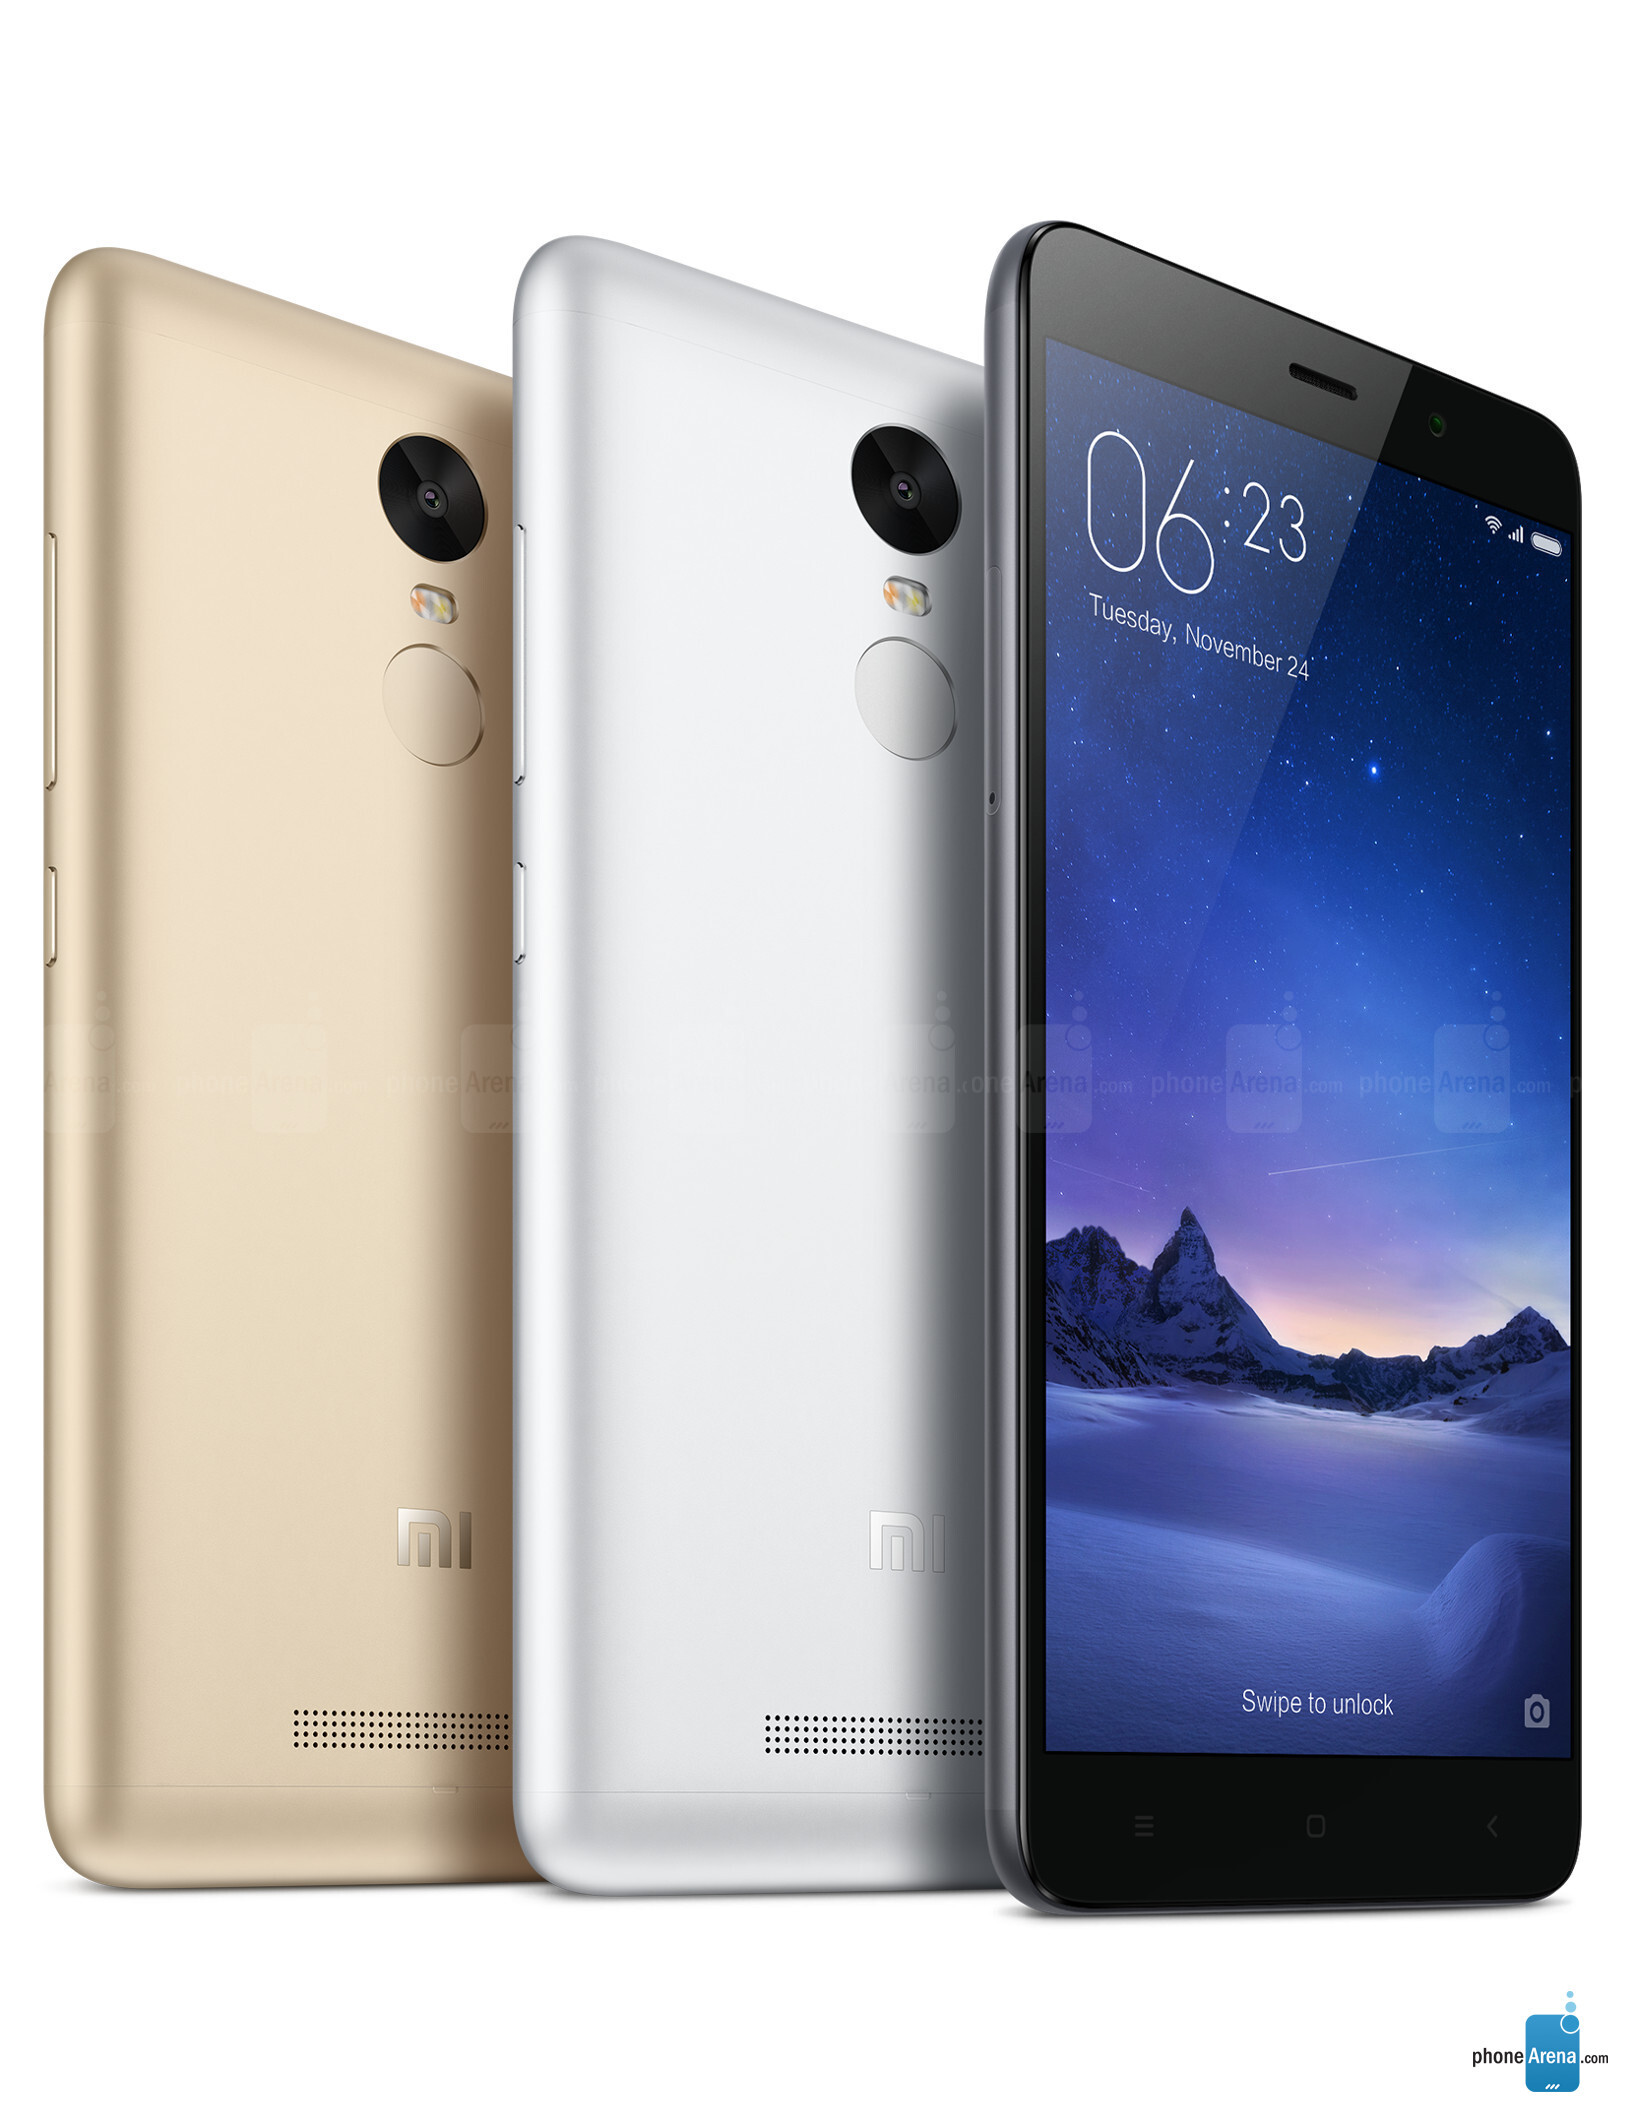 Xiaomi Redmi Note3 3 - How to Download and Install Python 3.7.4 on Windows 10, 8, 7